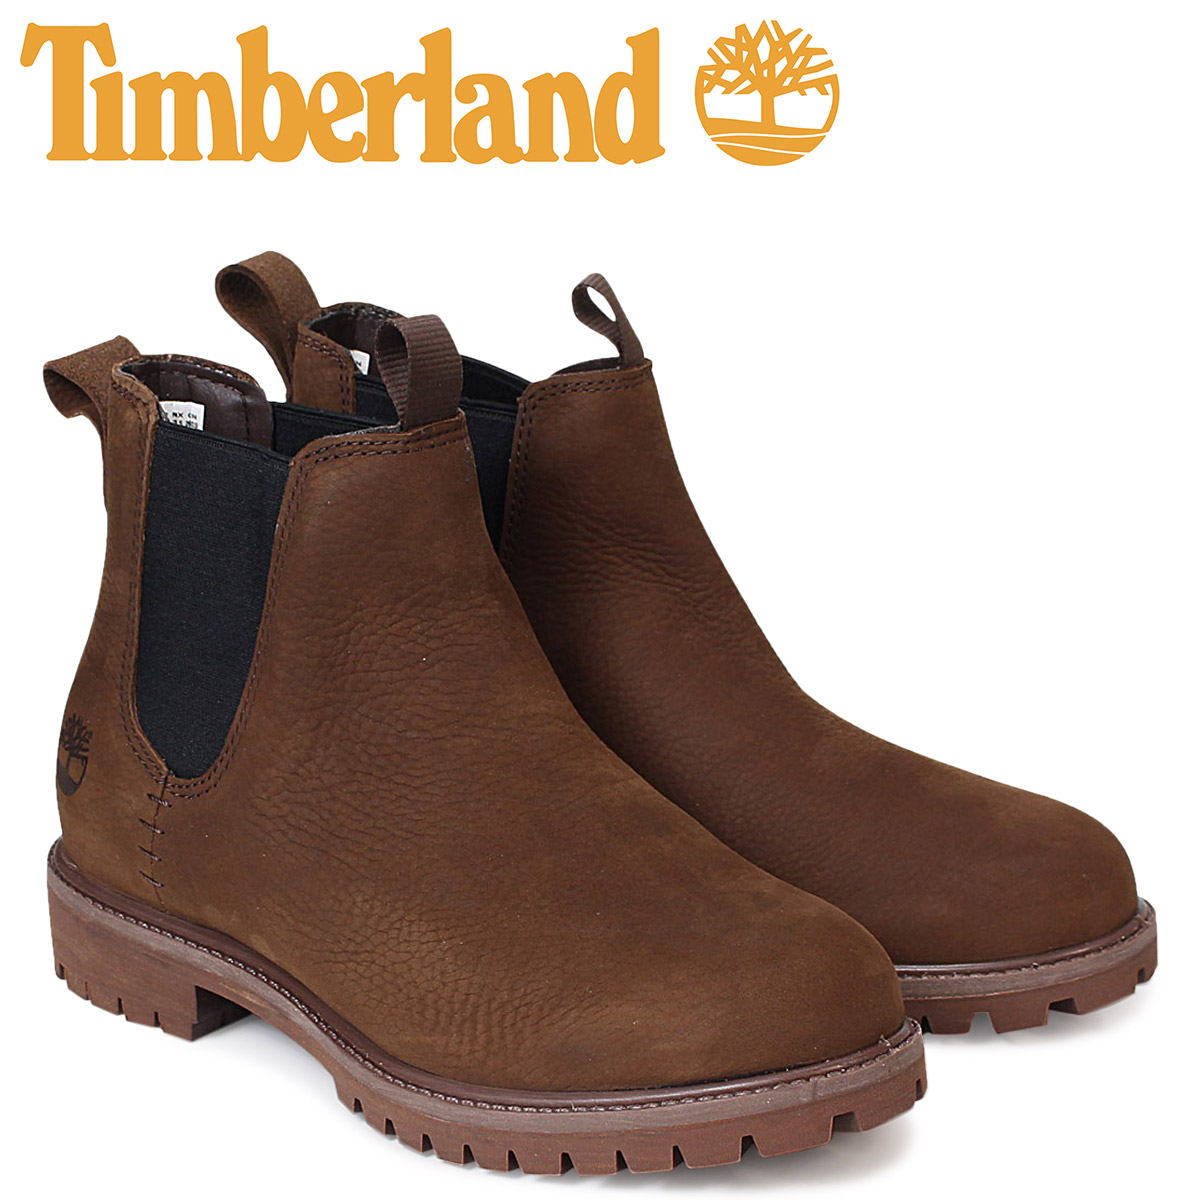 Timberland 6 inches men's Timberland boots premium waterproof 6INCHI PREMIUM WATERPROOF CHELSEA BOOTS A1M5G W Wise waterproofing brown